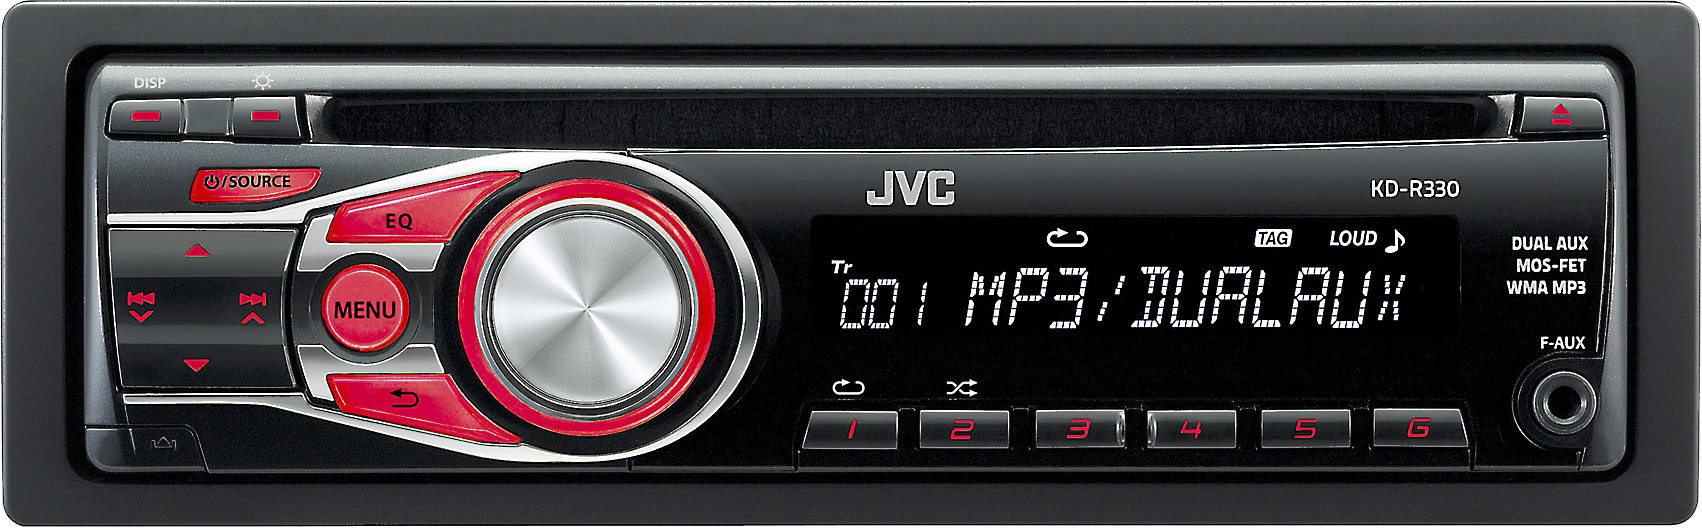 hight resolution of jvc kd r330 car stereo wiring diagram